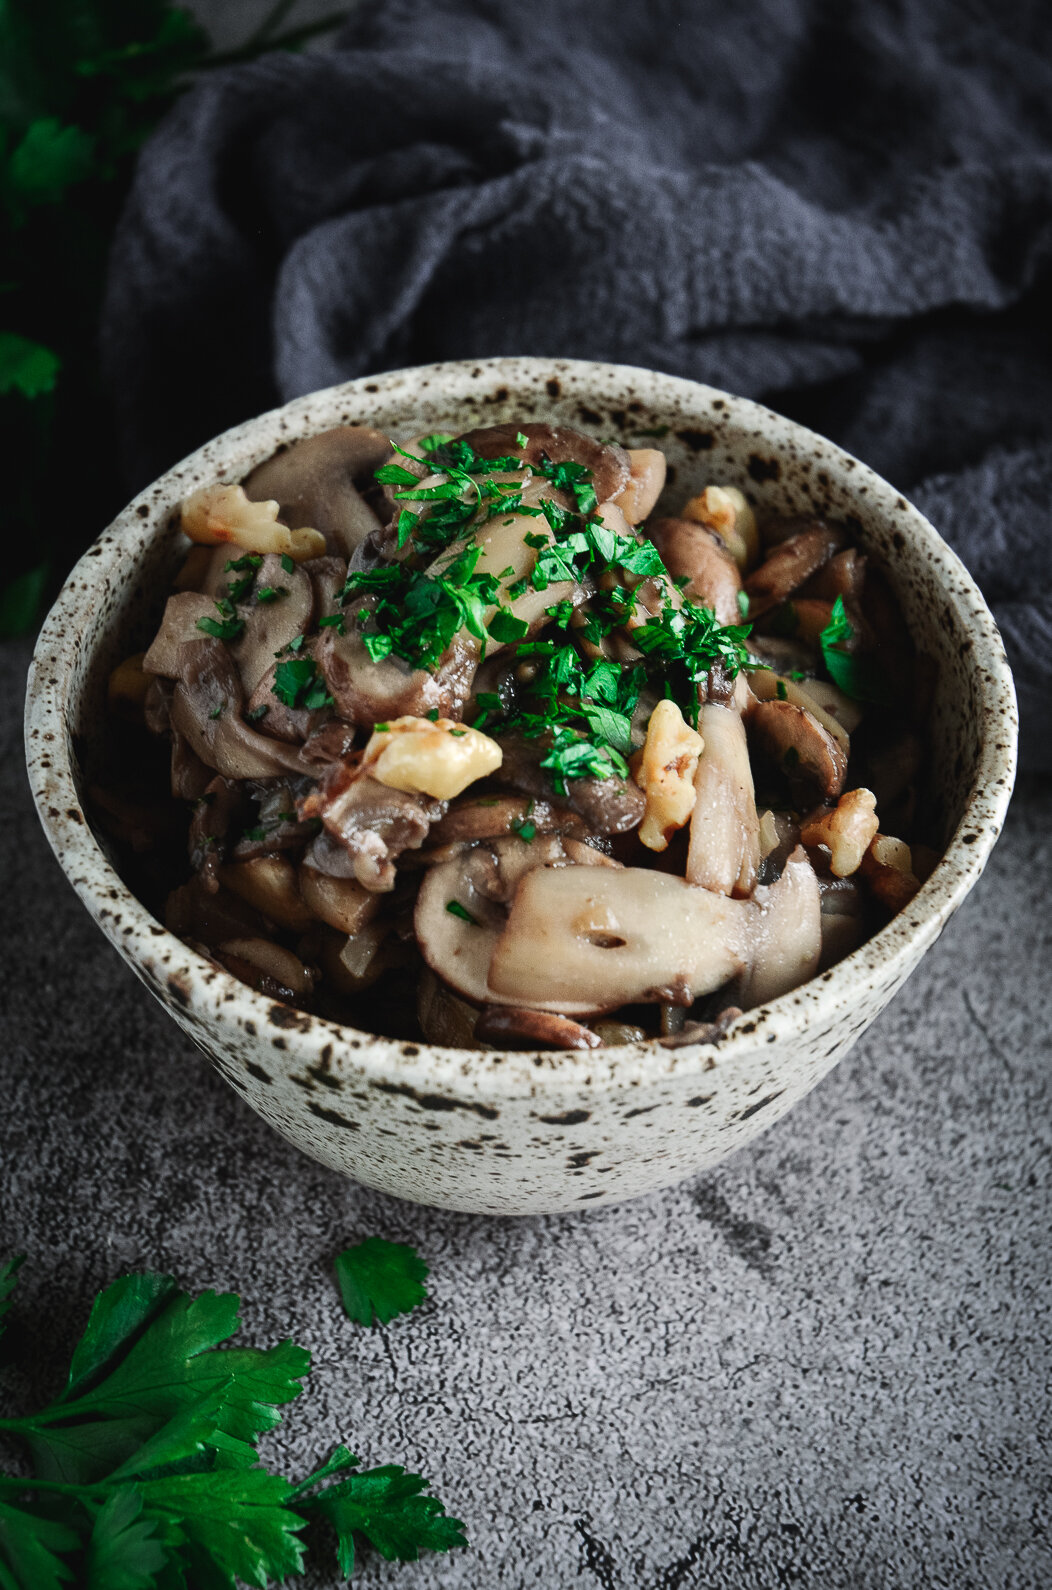 Sautéed mushrooms in bowl